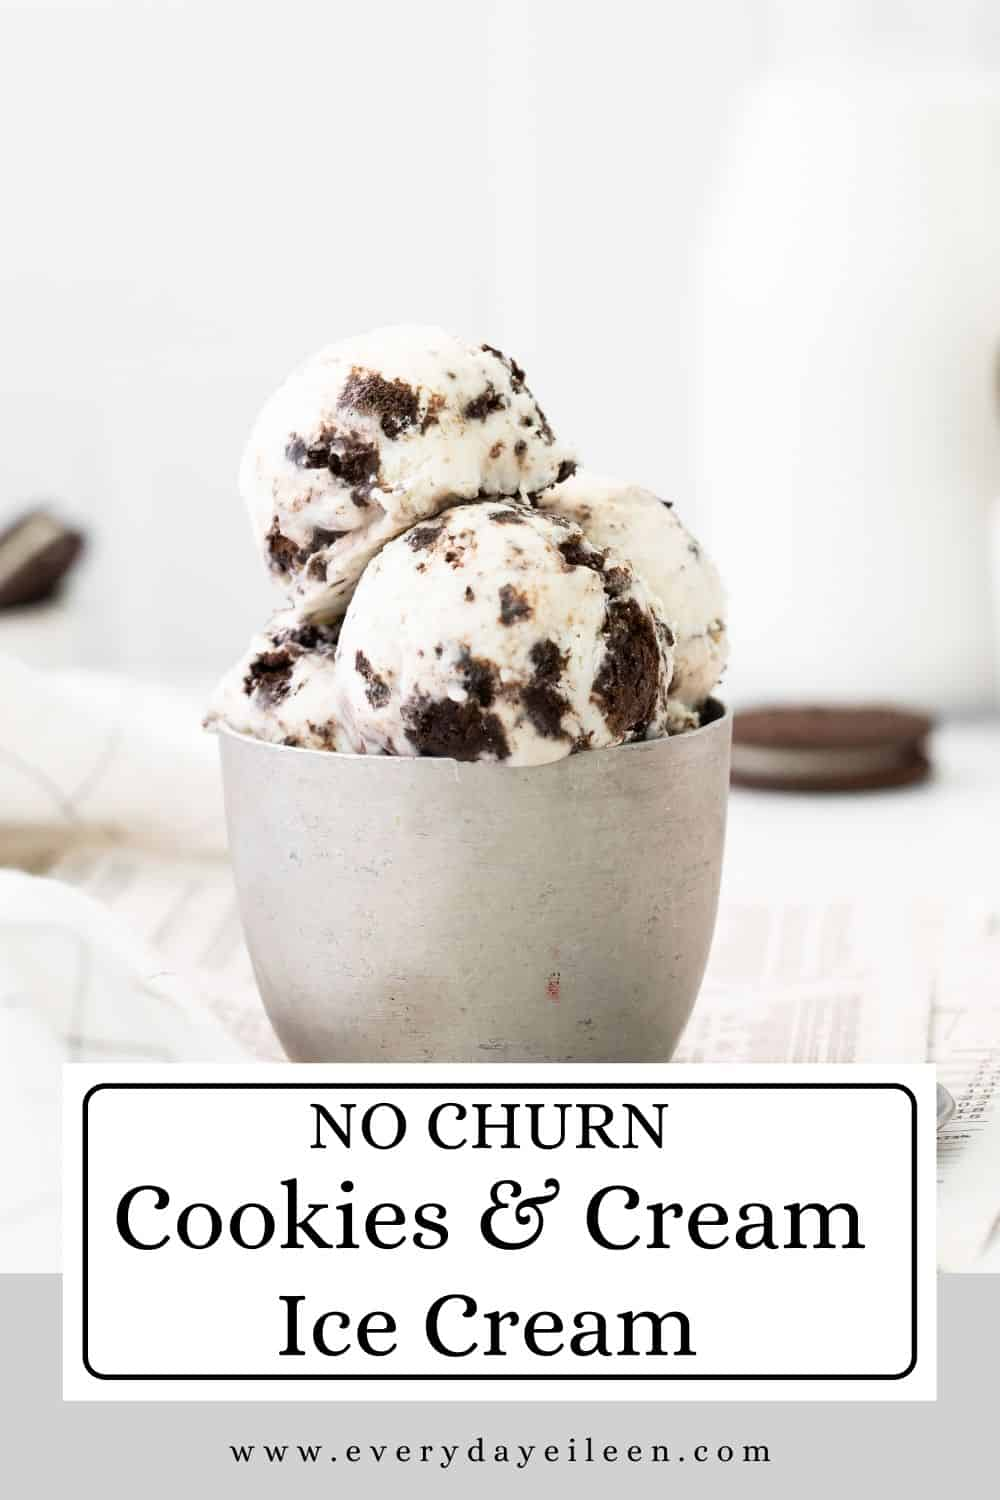 No Churn Cookies and Cream Ice Cream, just 4 ingredients and 5 minutes of preparation for this delicious homemade ice cream. The ice cream is creamy with chunks of crushed Oreo chocolate sandwich cookies in it. A fabulous frozen dessert for everyone to enjoy. A great ice cream treat for the dessert. Use the ice cream to make milkshakes, ice cream sandwiches, ice cream cakes too. Make some for summer parties, BBQ dessert, graduation parties, Fathers day, Memorial Day and 4th of July dessert table.  via @everydayeileen